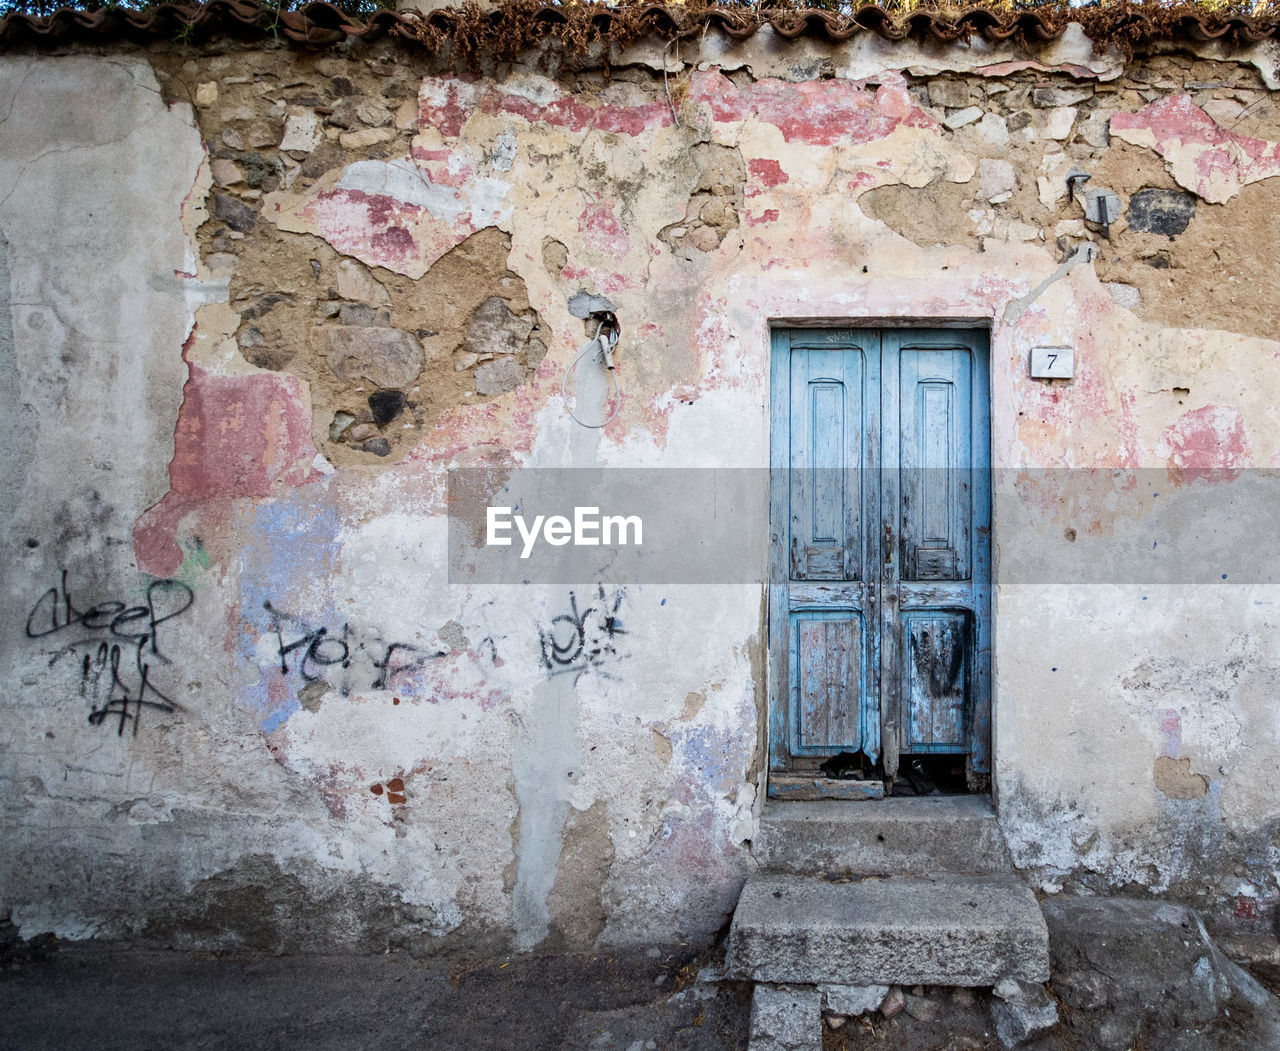 architecture, built structure, building, building exterior, old, wall - building feature, no people, door, abandoned, entrance, weathered, day, damaged, house, window, peeling off, graffiti, wall, run-down, peeled, outdoors, deterioration, ruined, plaster, messy, concrete